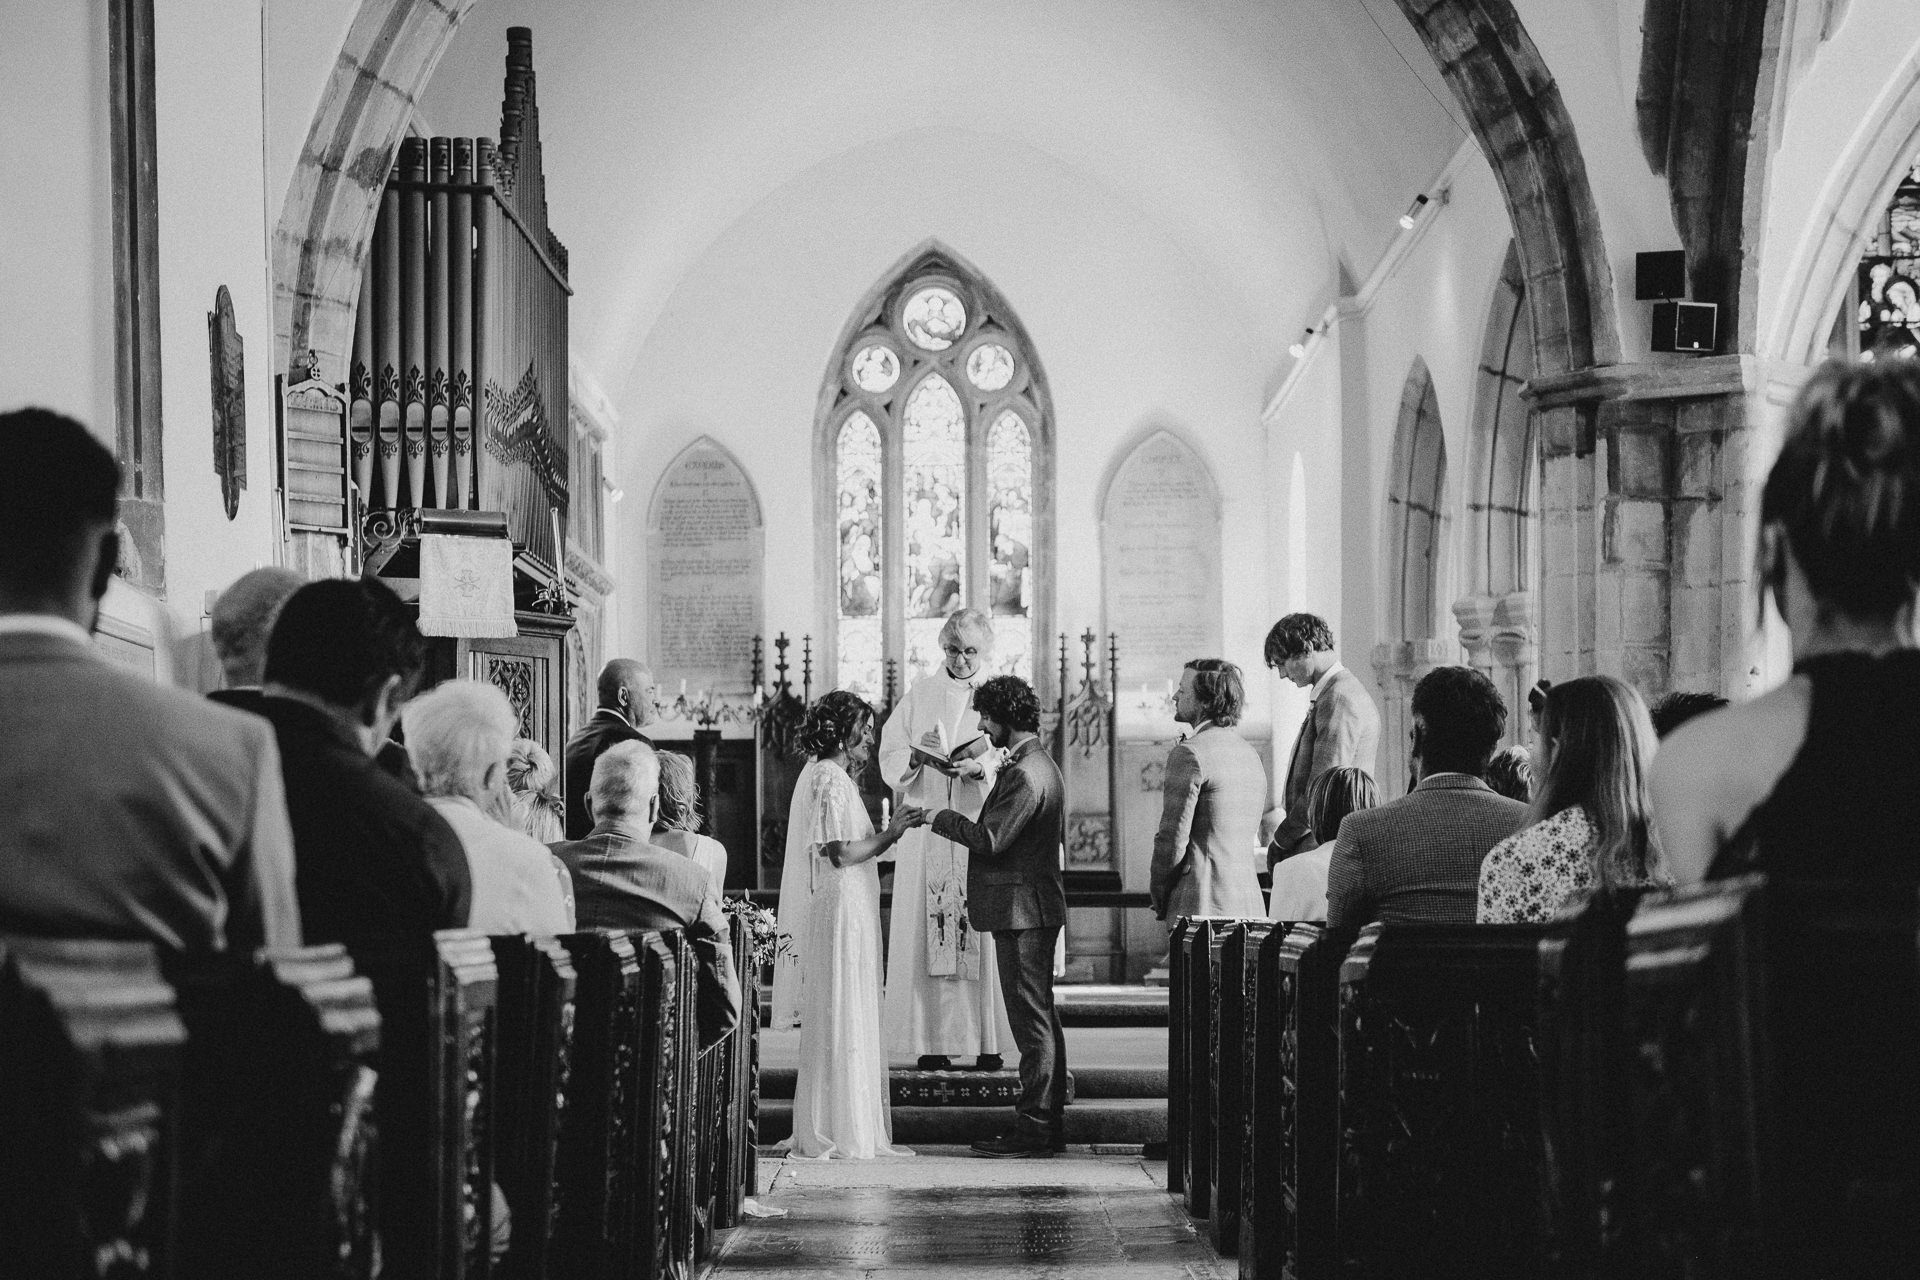 0039-DEVON-SOMERSET-WEDDING-PHOTOGRAPHER-0155-BEST-OF-2019-LOUISE-MAY-DEVON-SOMERSET-WEDDING-PHOTOGRAPHY-LM2_0830